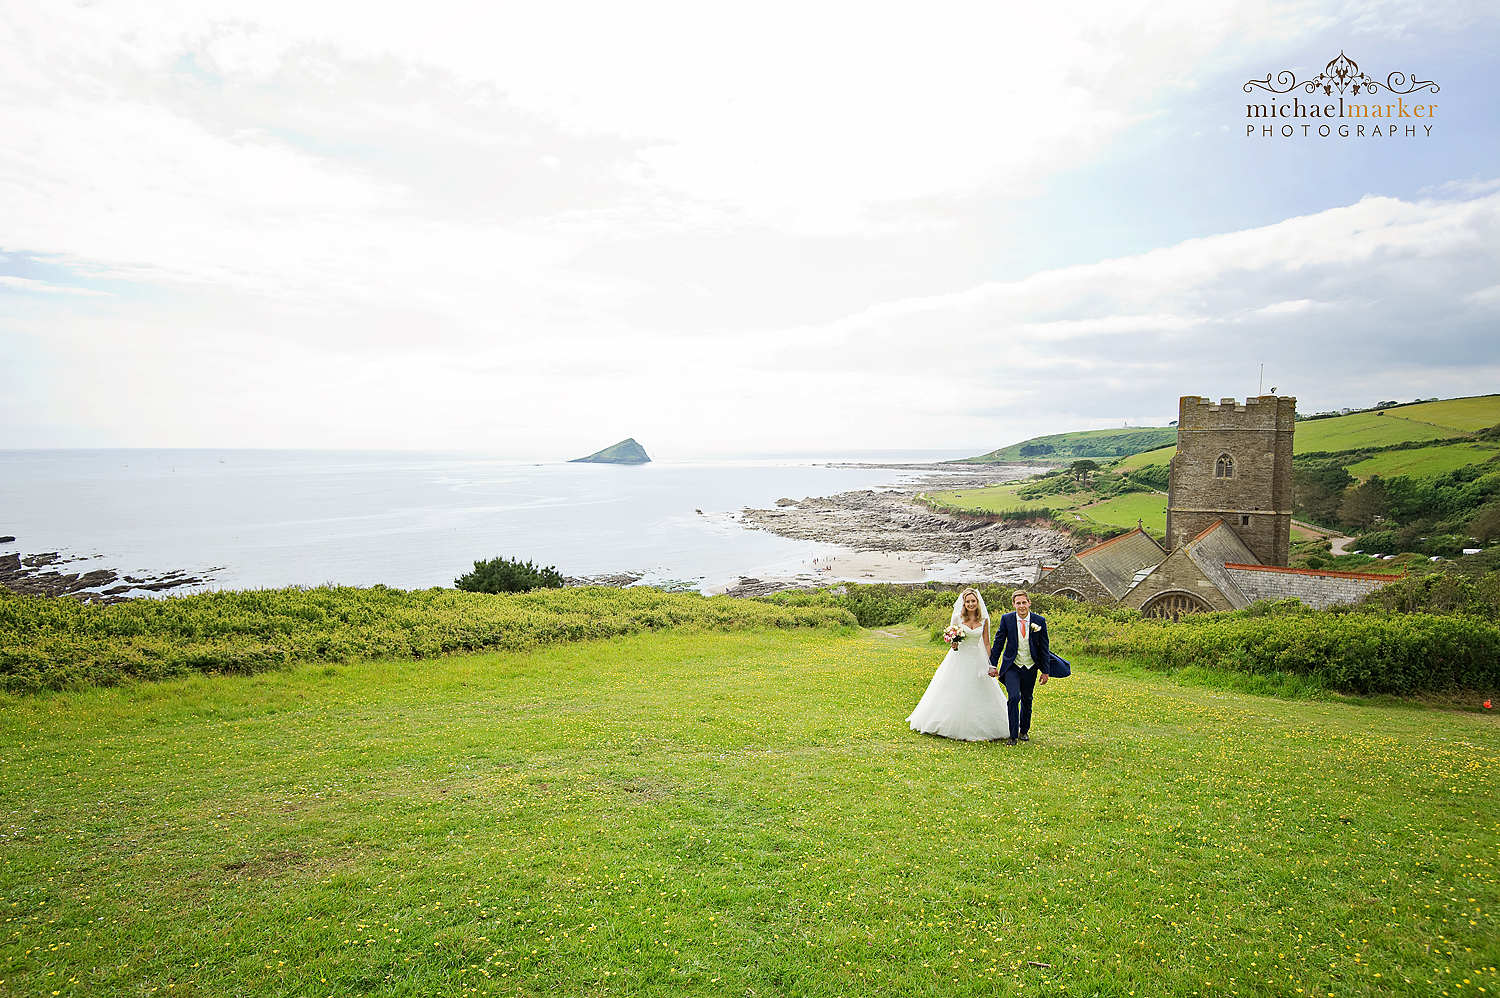 Bride and groom walking in fields behind Wembury Church with Plymouth and sea in the background